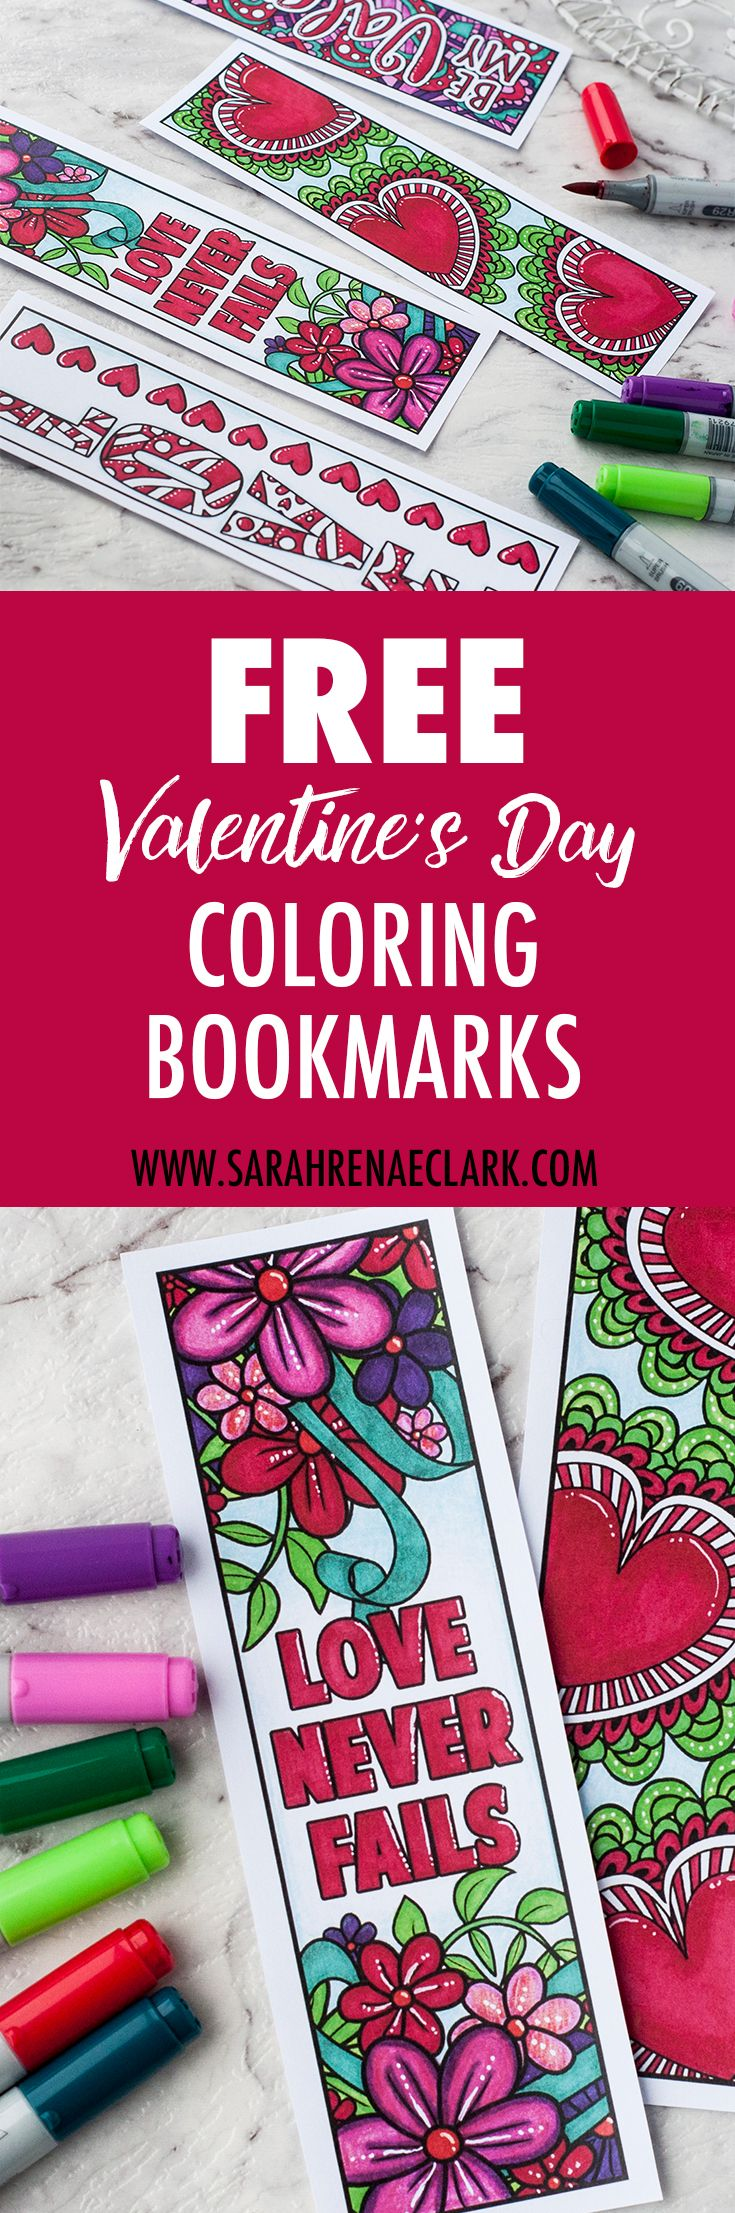 Free printable Valentine\'s Day coloring bookmarks | Pinterest ...